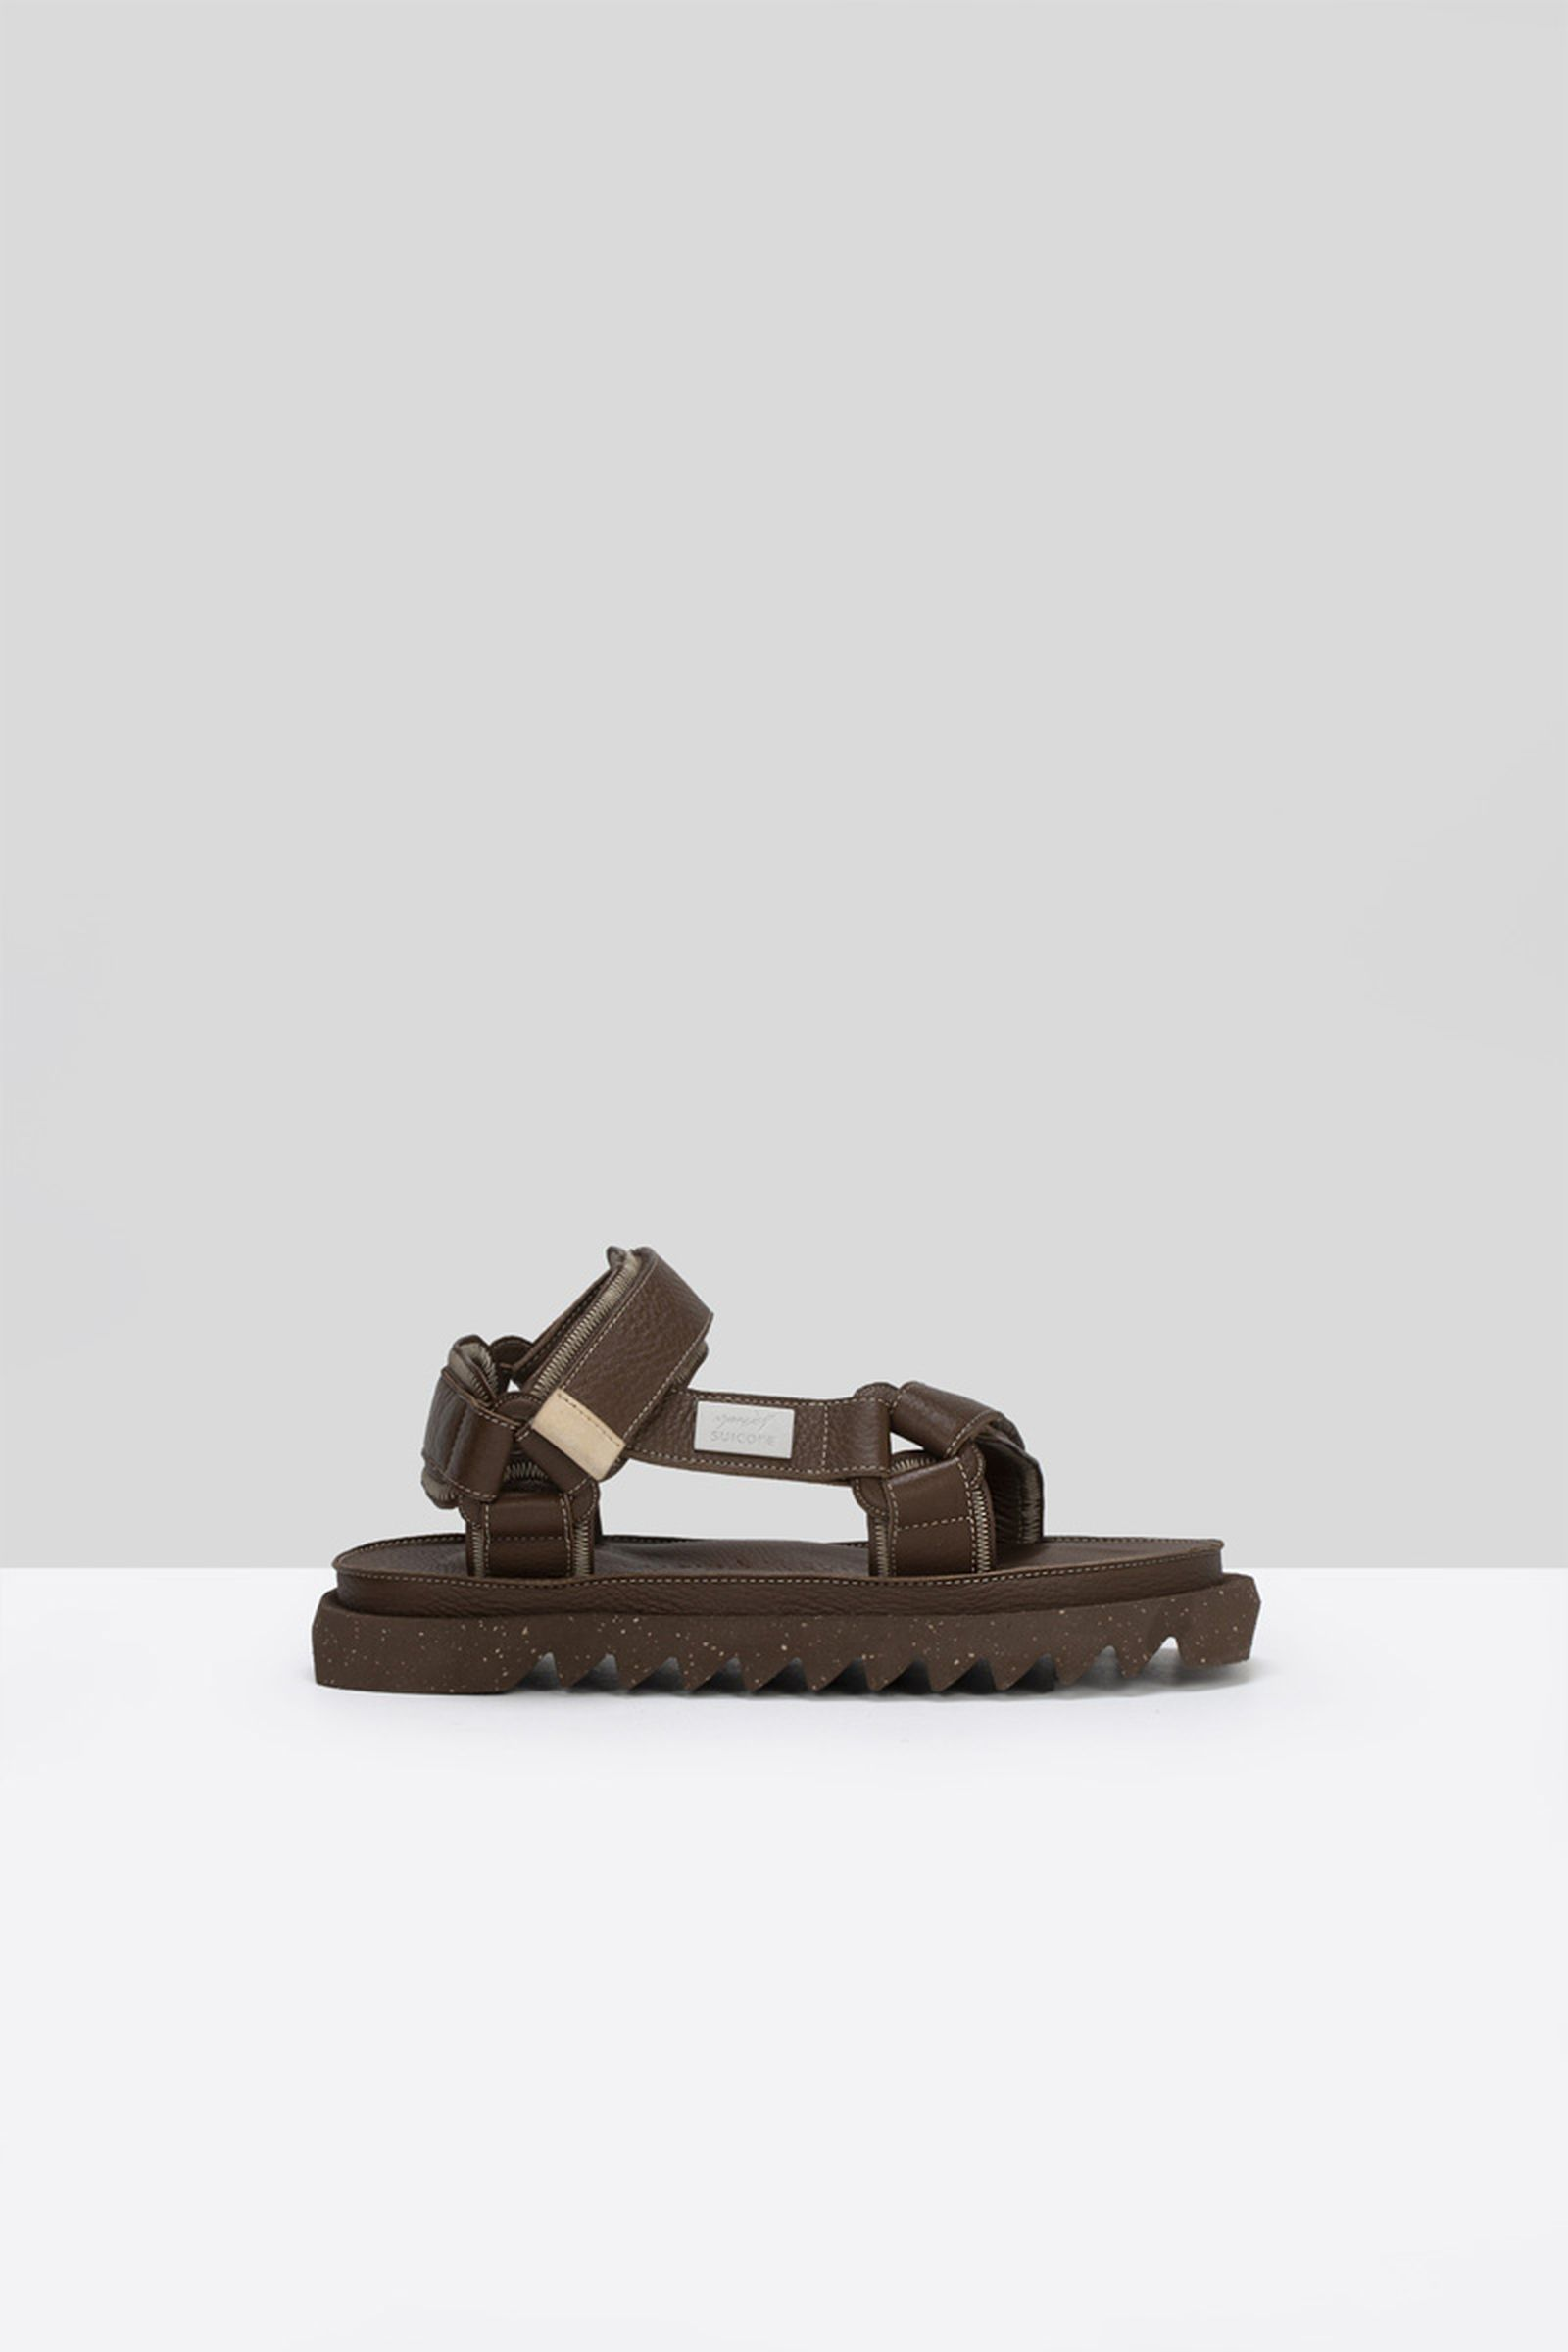 marsell-suicoke-ss21-collection-release-date-price-4